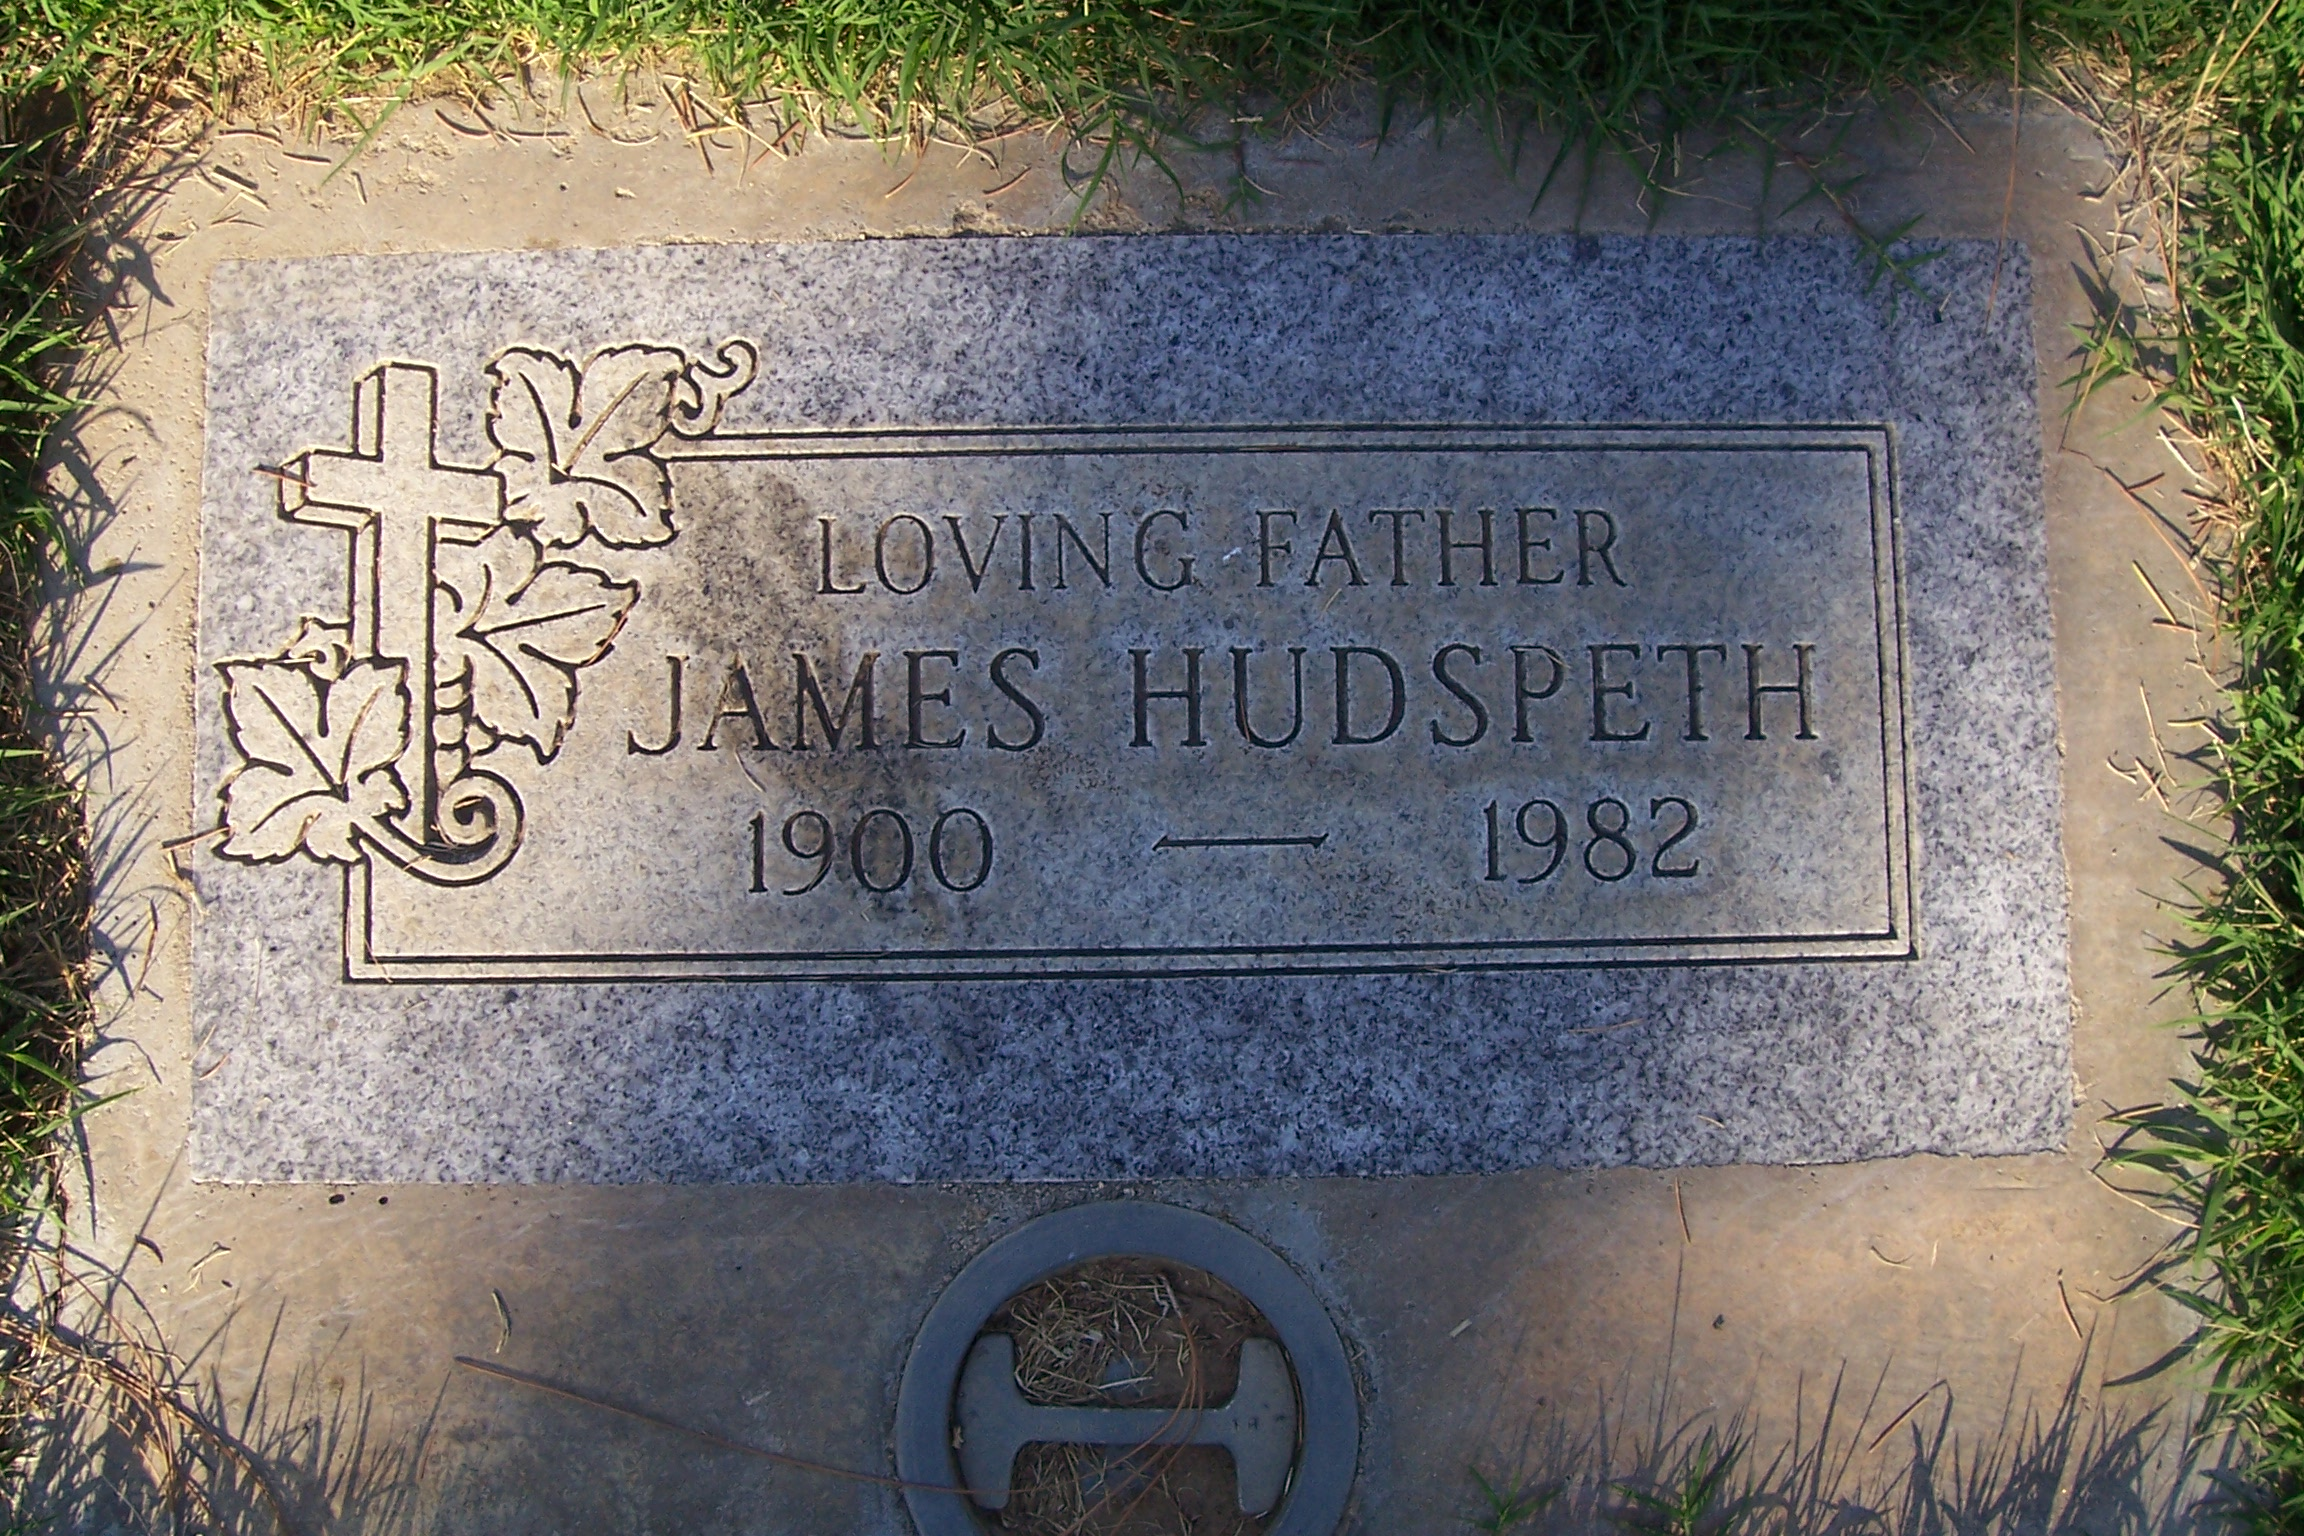 James Thomas Hudspeth